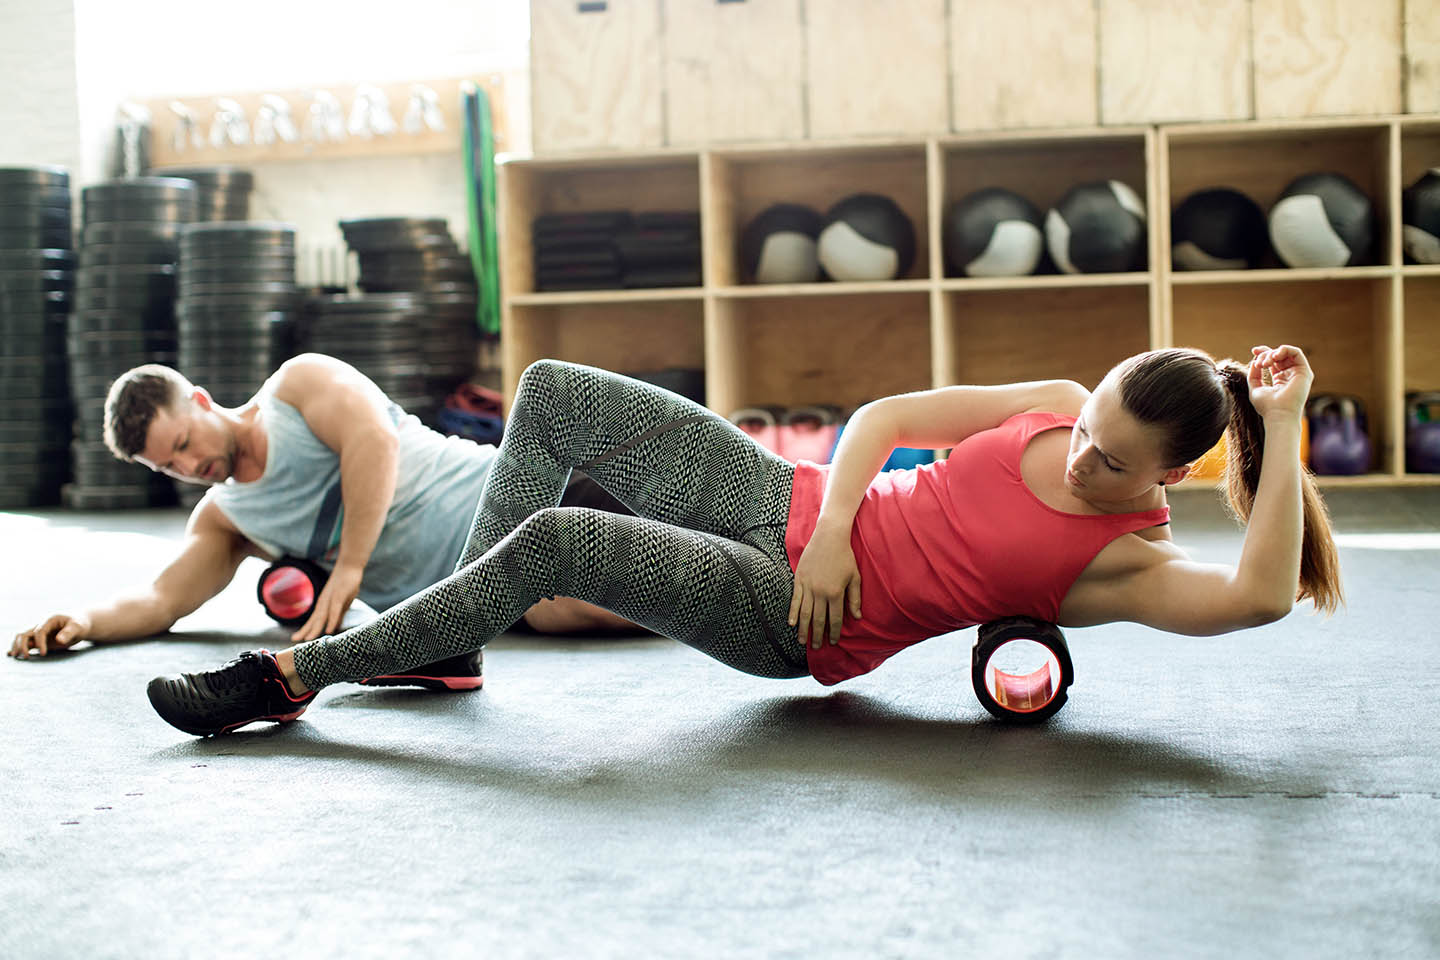 A woman and man using foam rollers in the gym